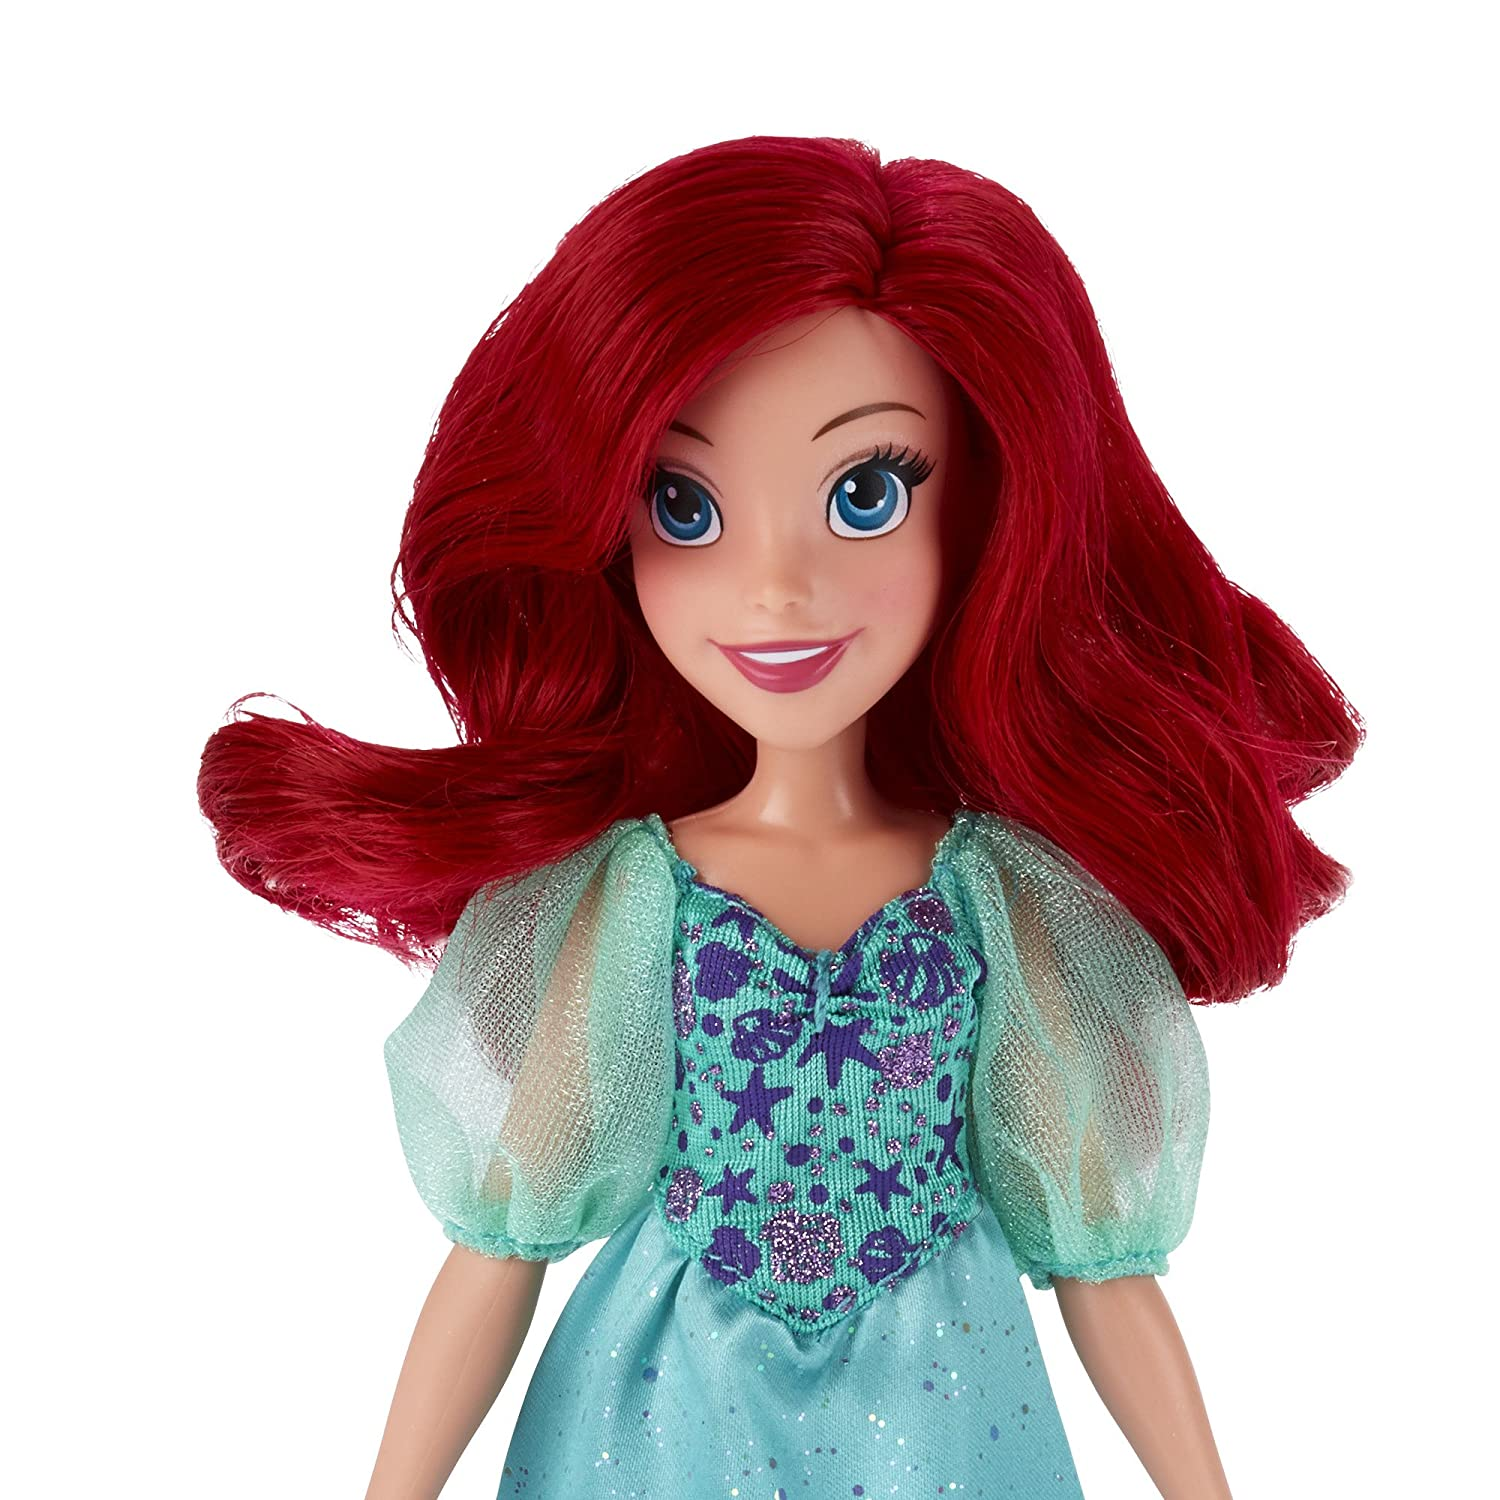 Amazon Disney Princess Royal Shimmer Ariel Doll Toys & Games